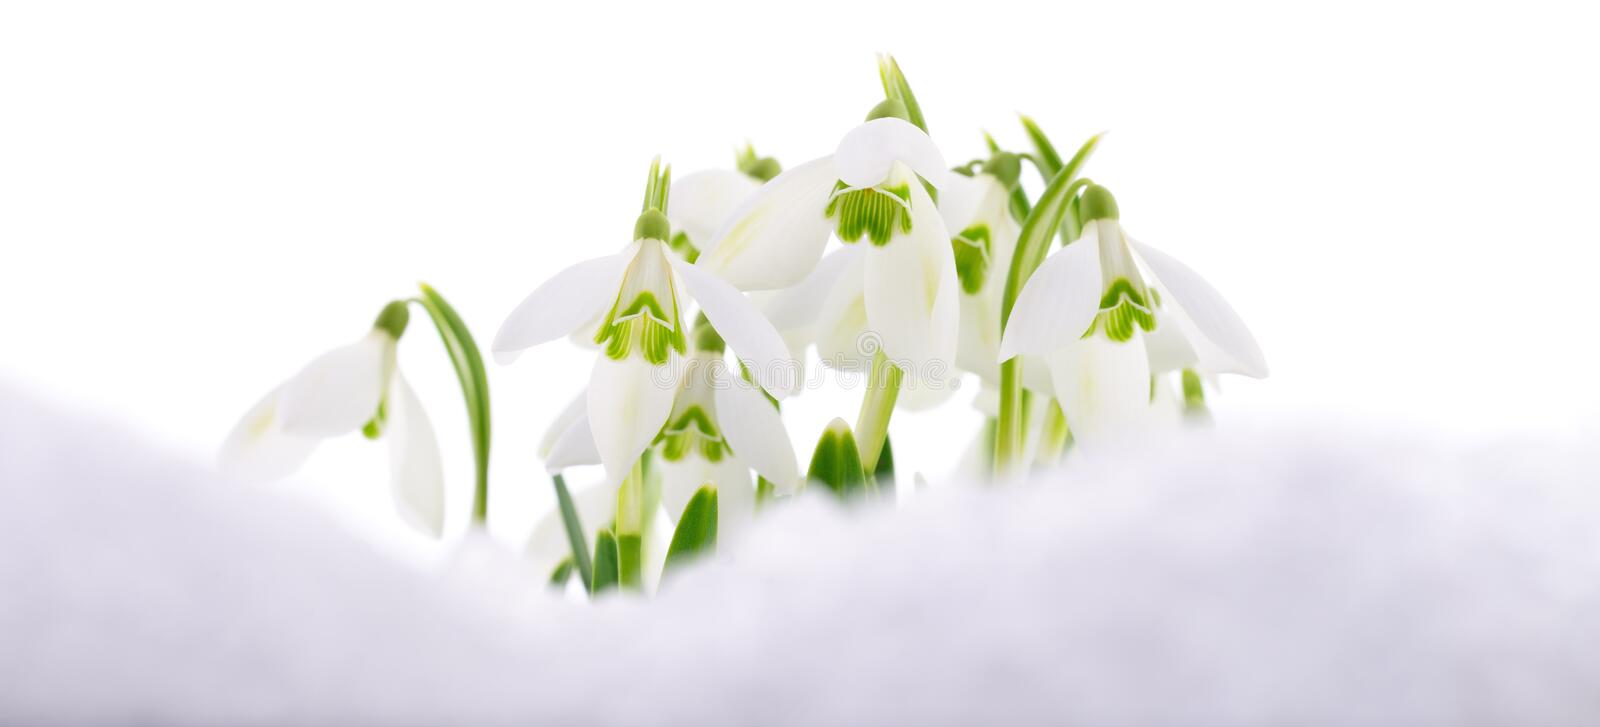 Snowdrop and Snow. Snowdrop flower coming out from real snow on white royalty free stock images